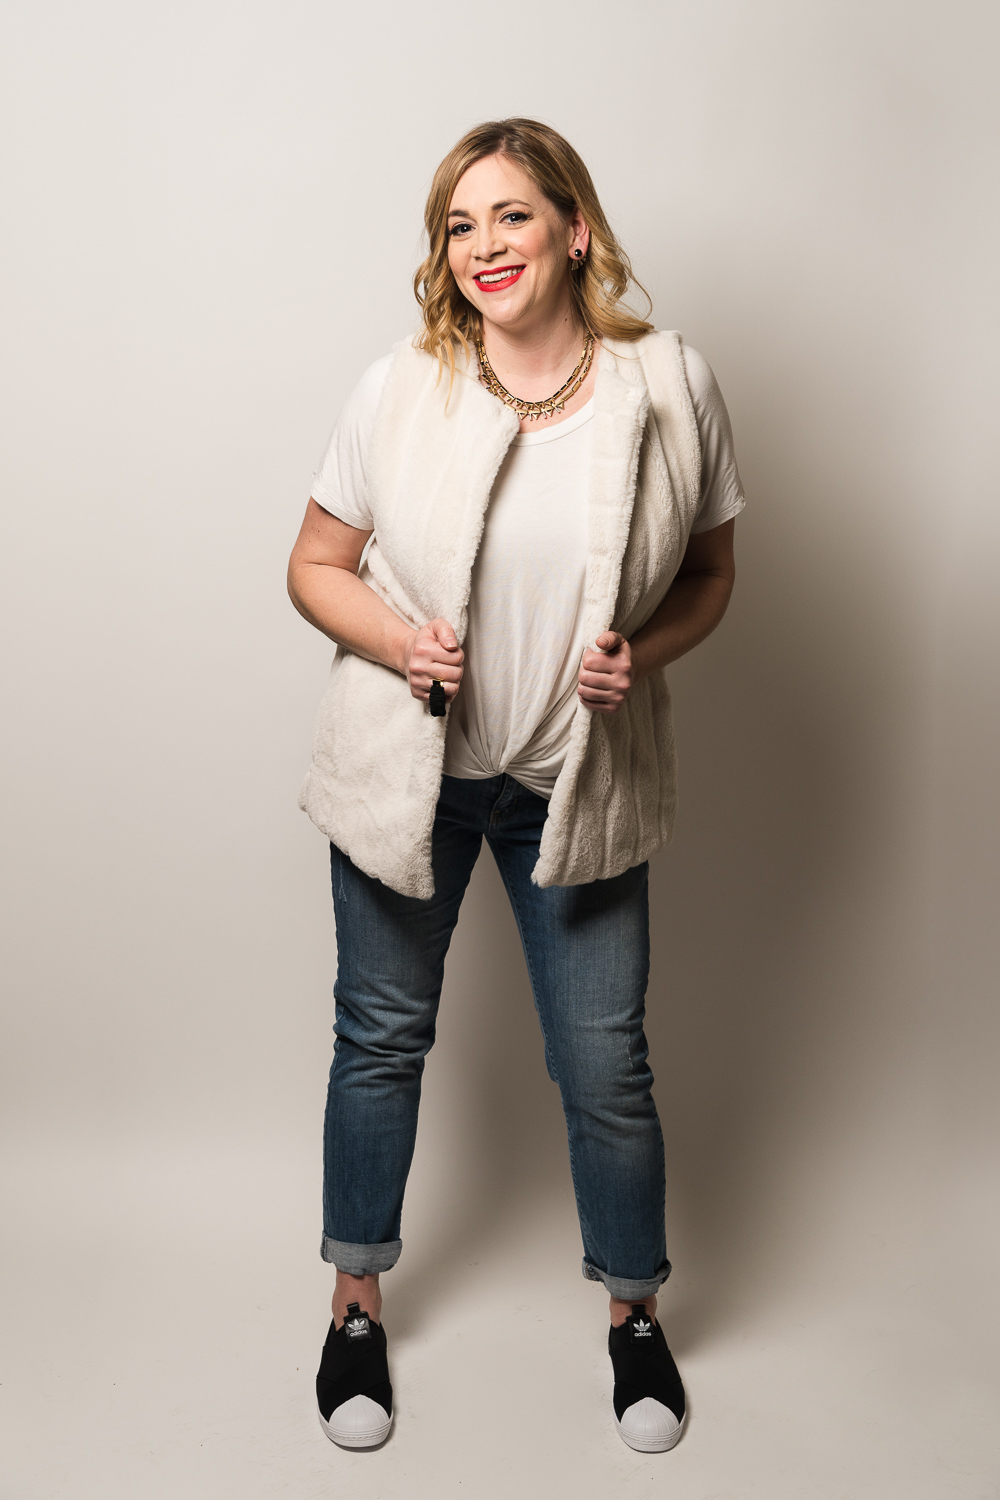 Jennifer Wilhelm is styled is a fun, casual outfit for weekend days with her kids.